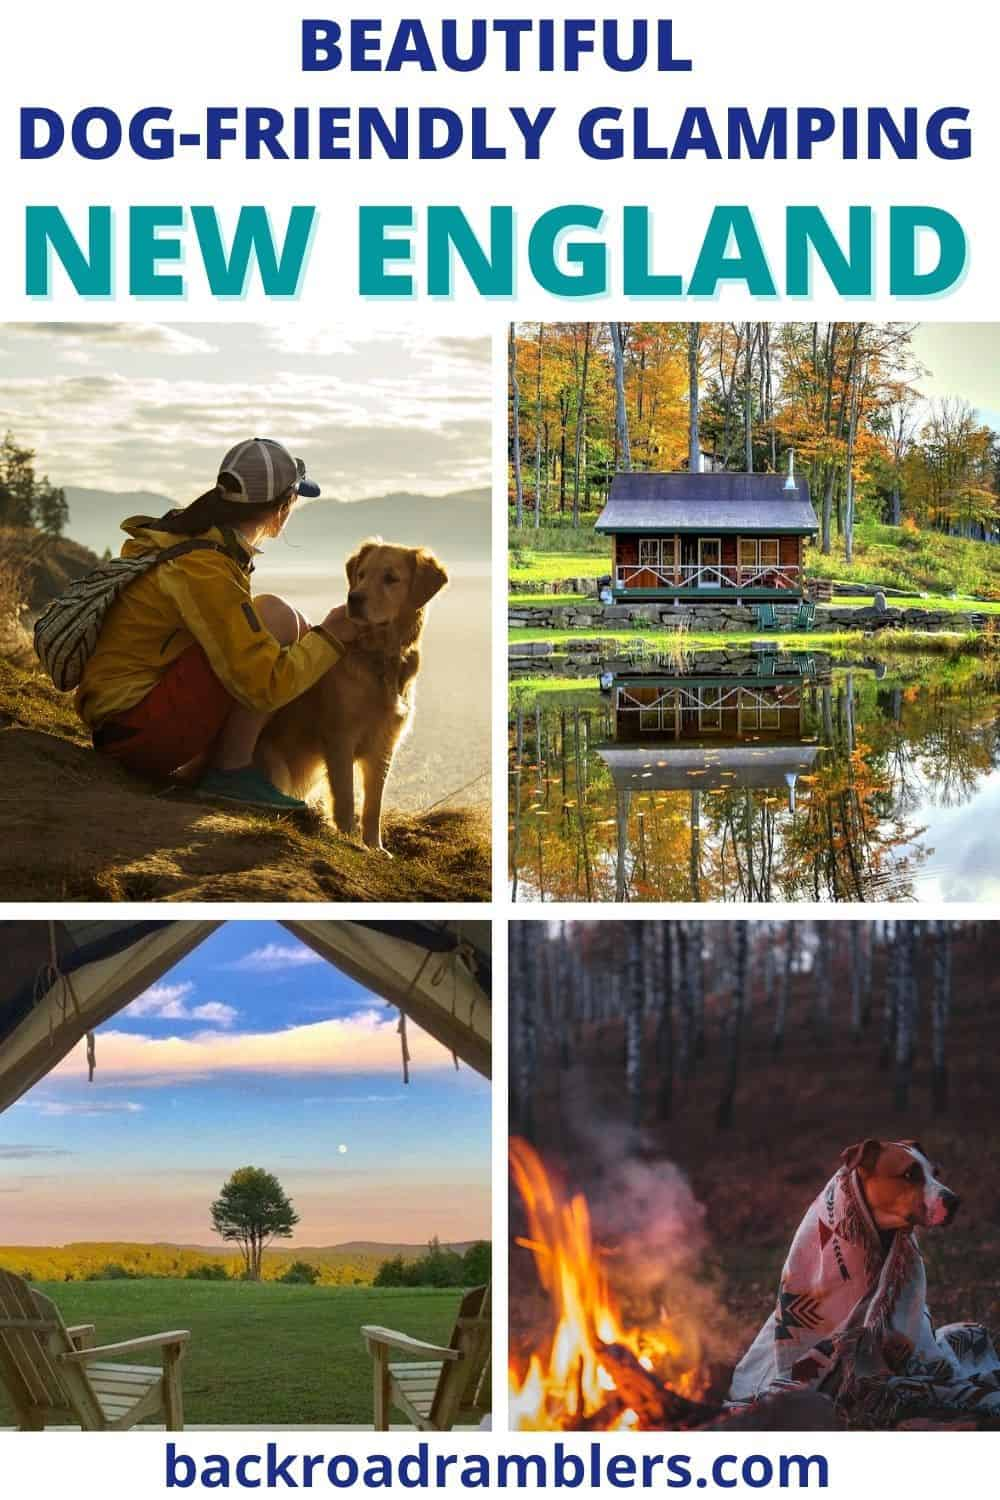 A collage of photos featuring glamping spots in New England that allow dogs. Photo credit to VRBO and Tentrr.